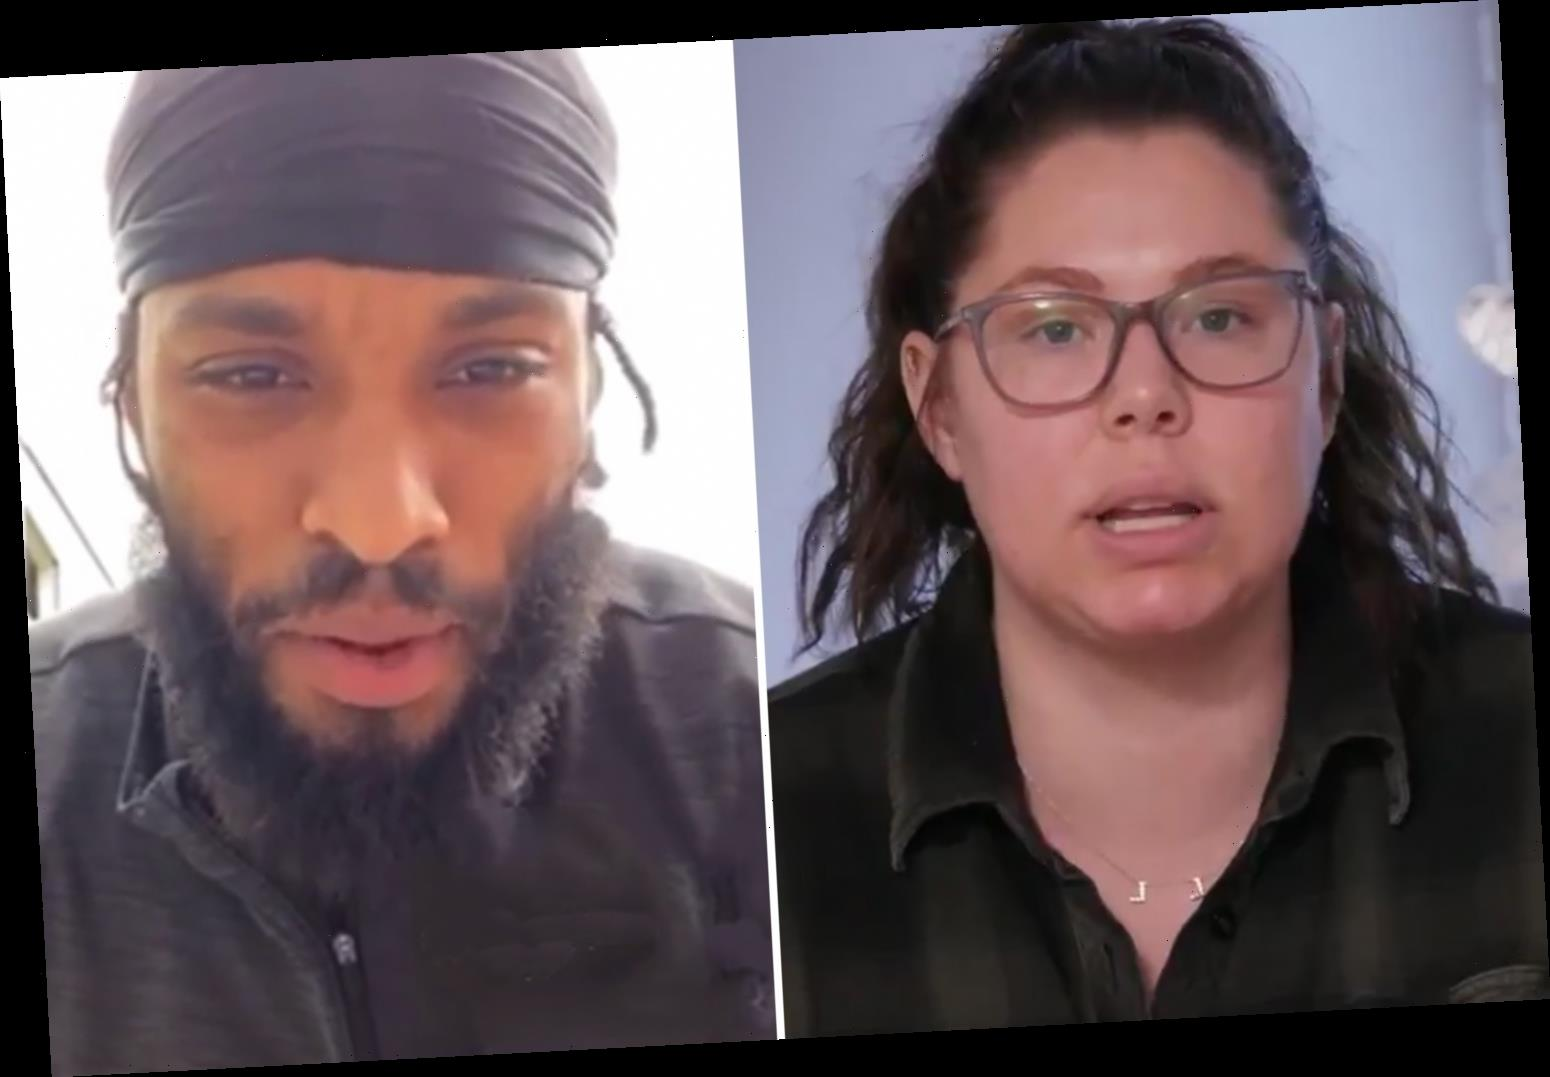 Teen Mom Kailyn Lowry's charges dropped after she was arrested for 'punching' ex Chris Lopez in nasty brawl